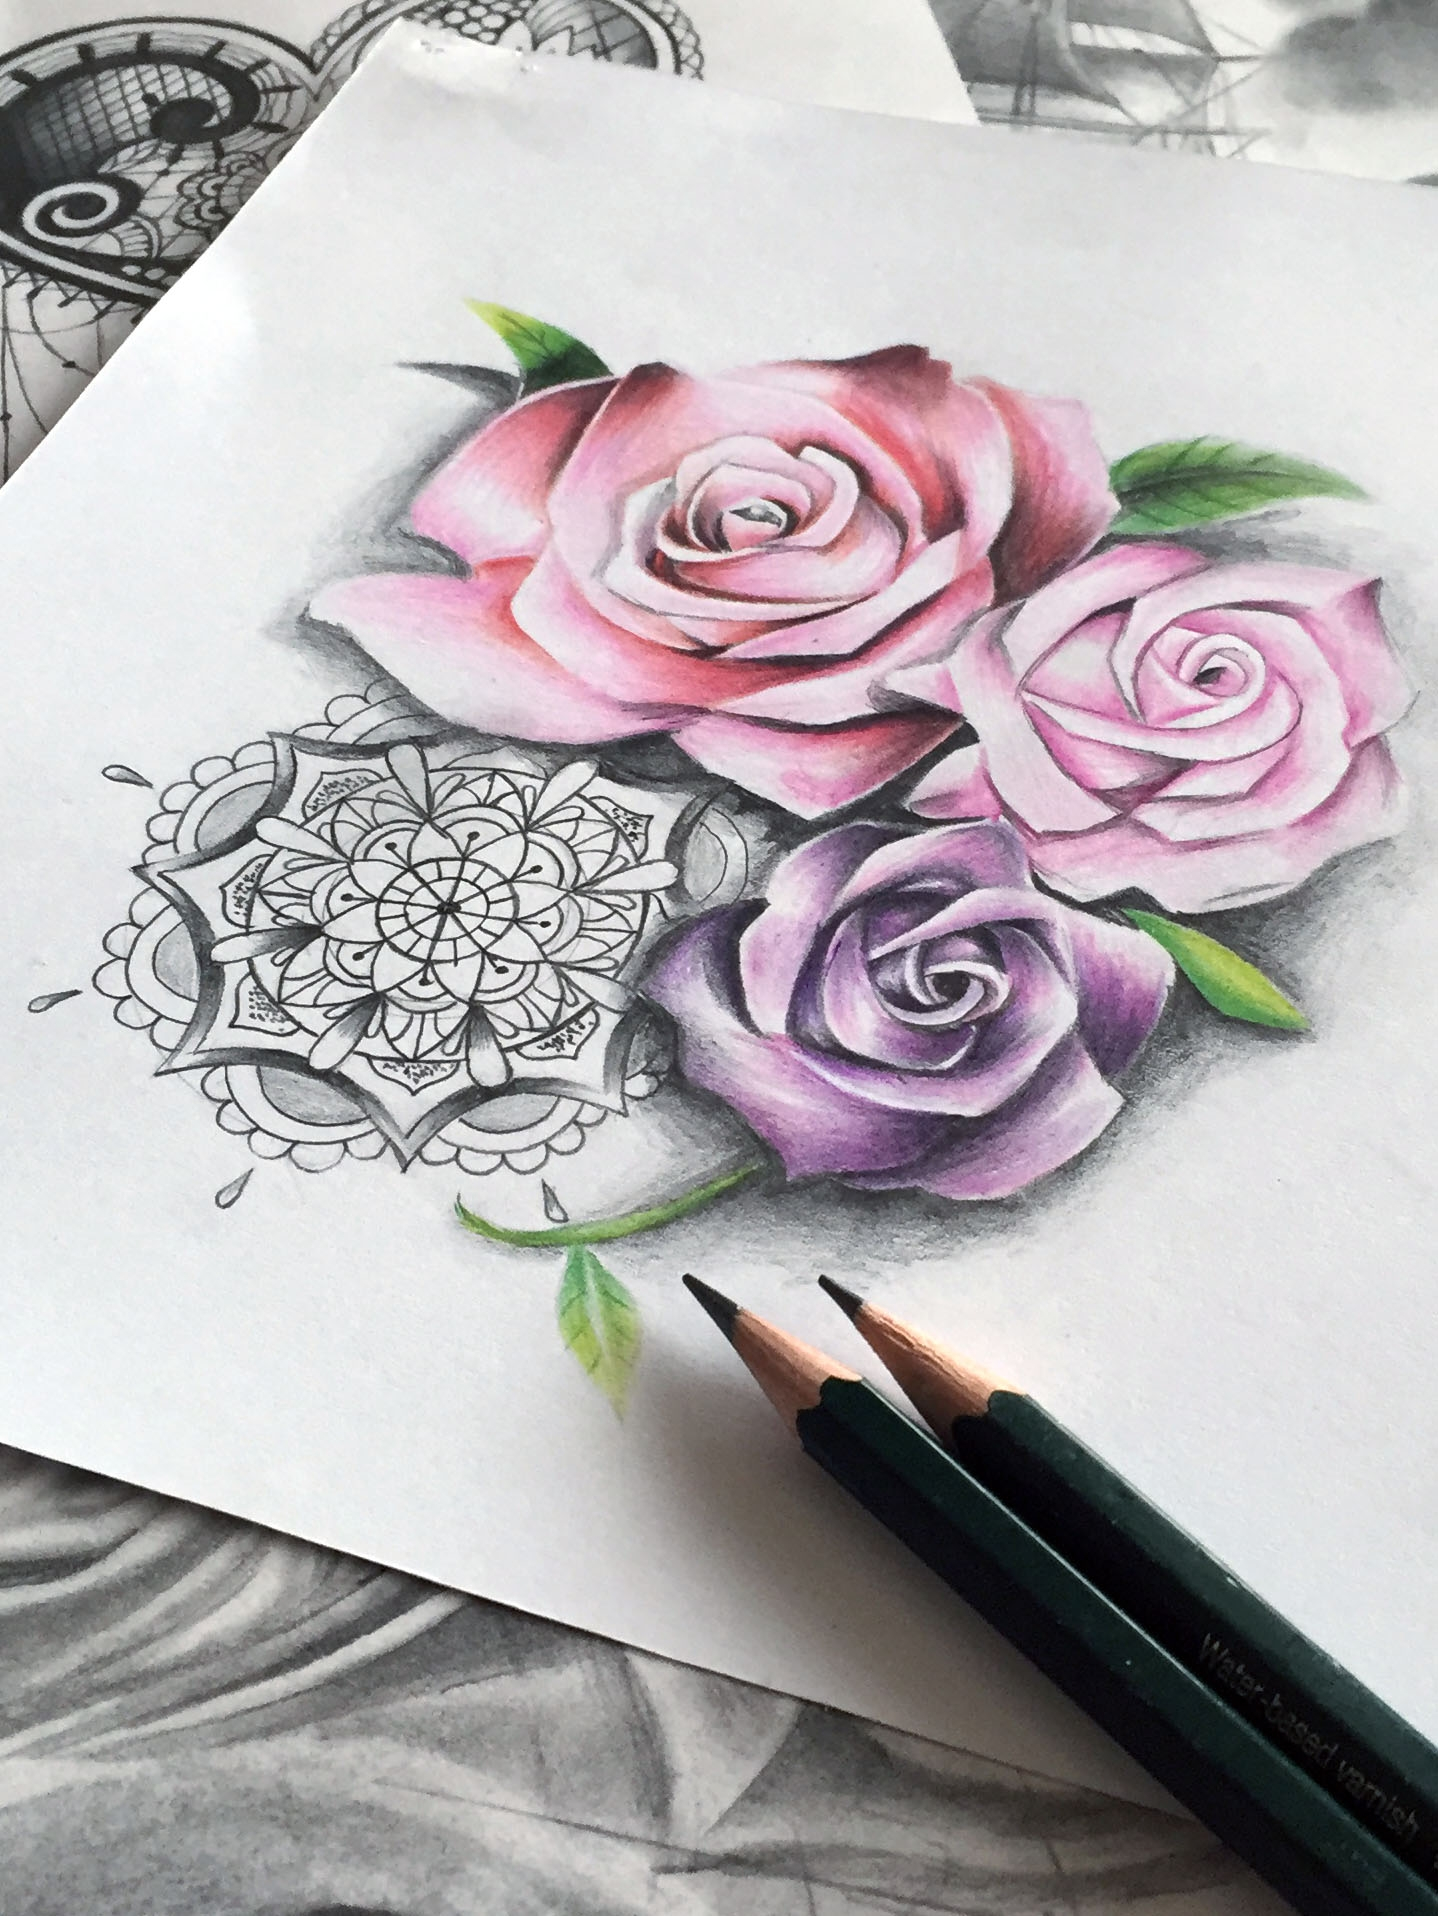 Djorine maingriz - Rose dessin tatouage ...